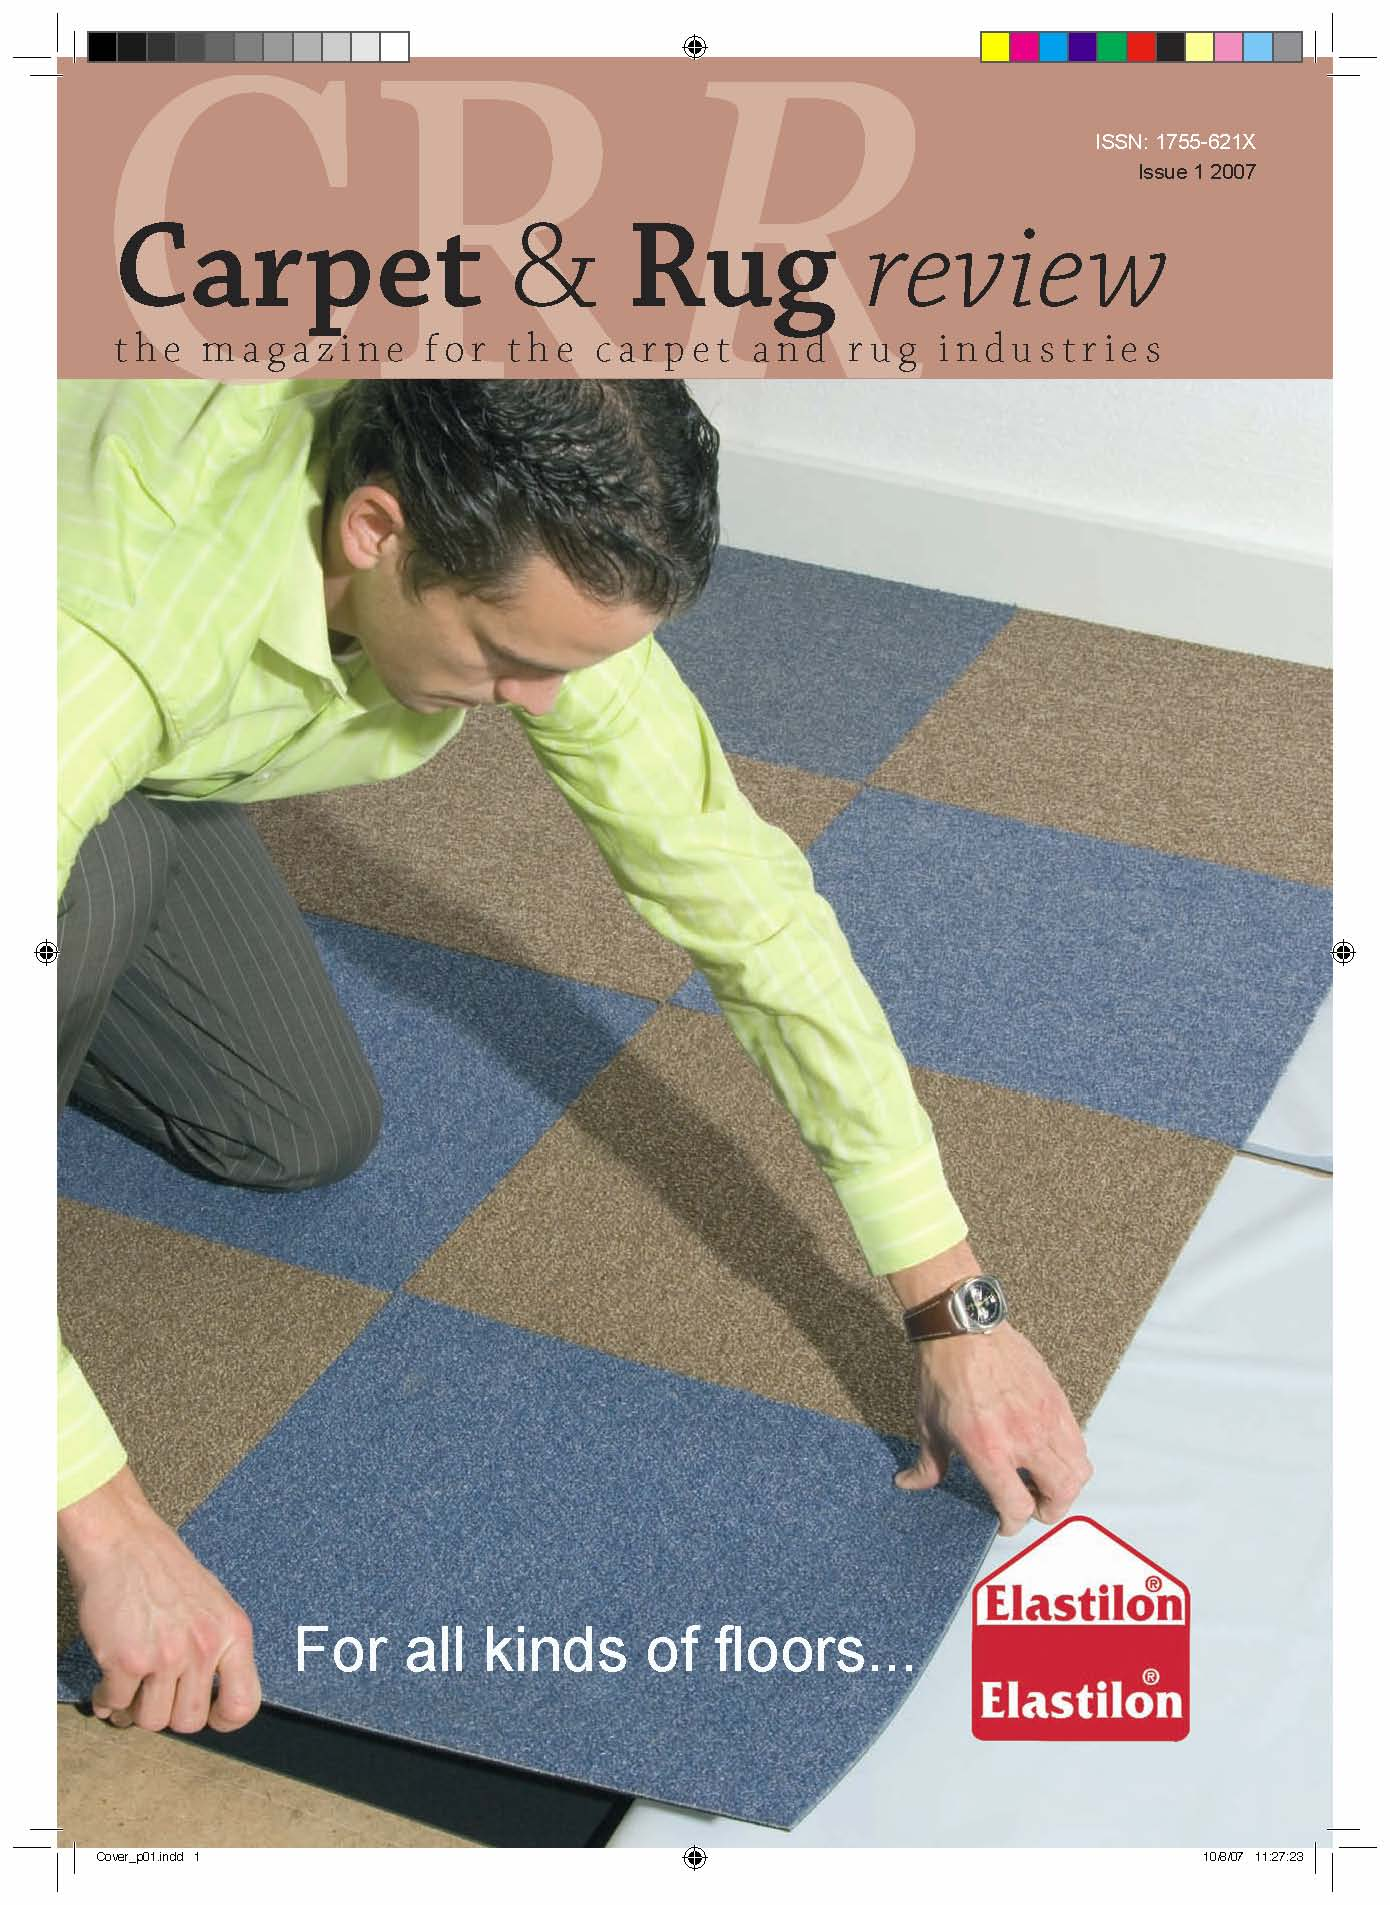 carpet_and_rug_review_low